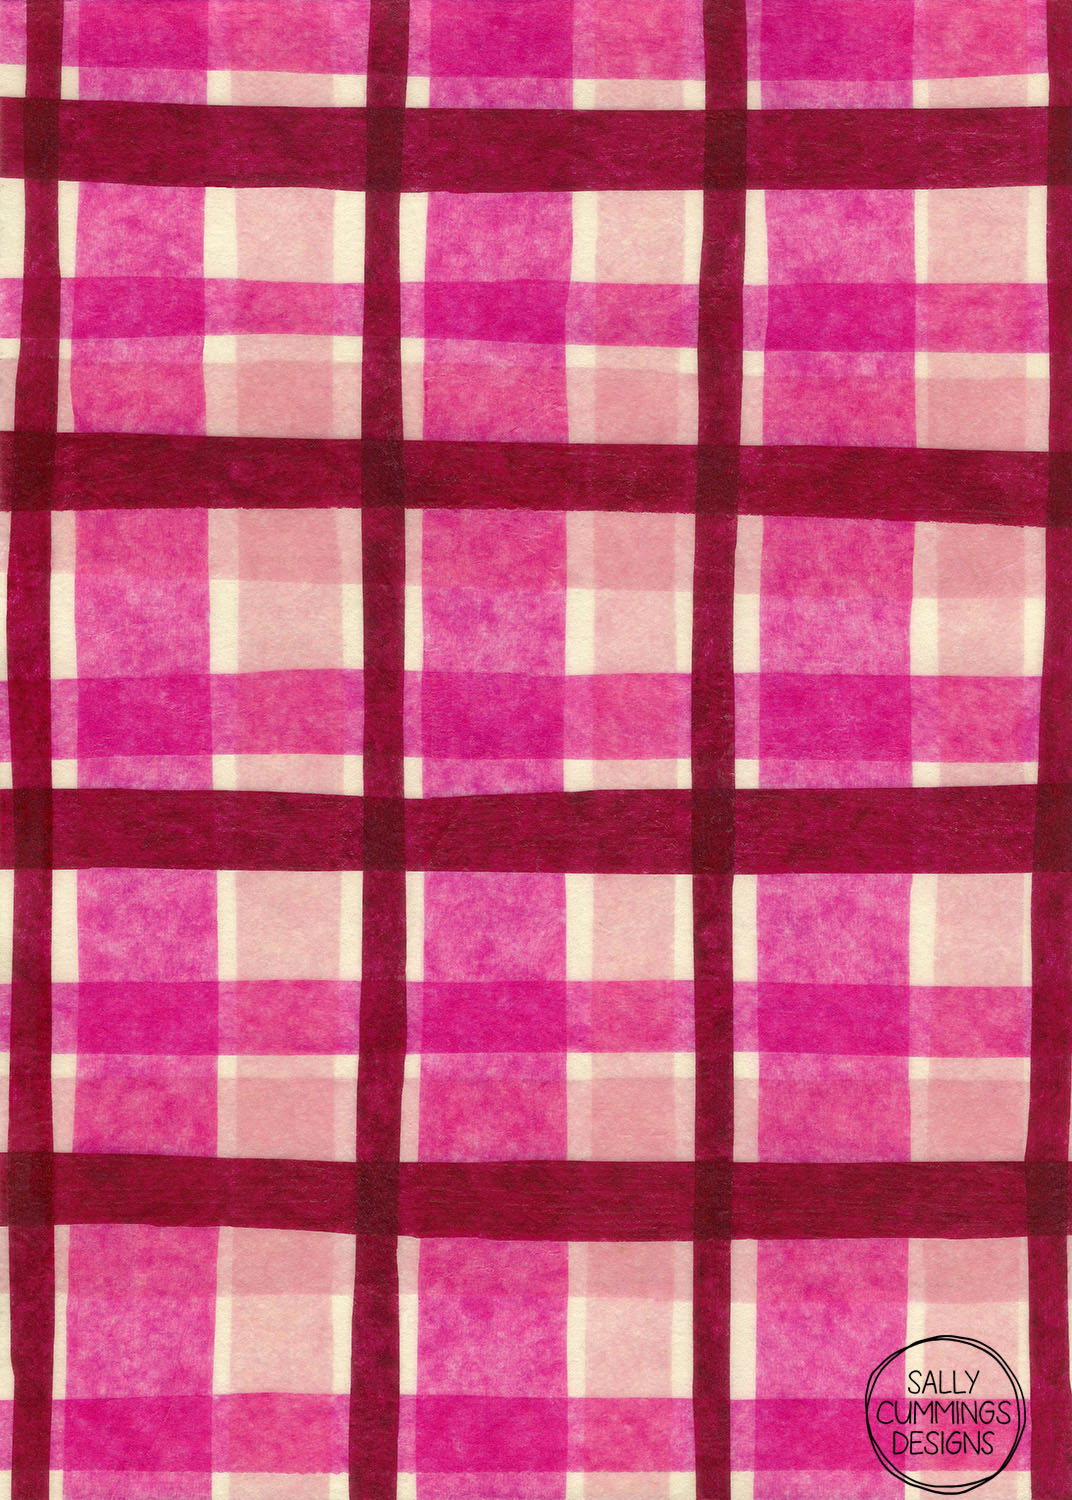 Sally Cummings Designs - Tissue Paper Plaid (Pink)